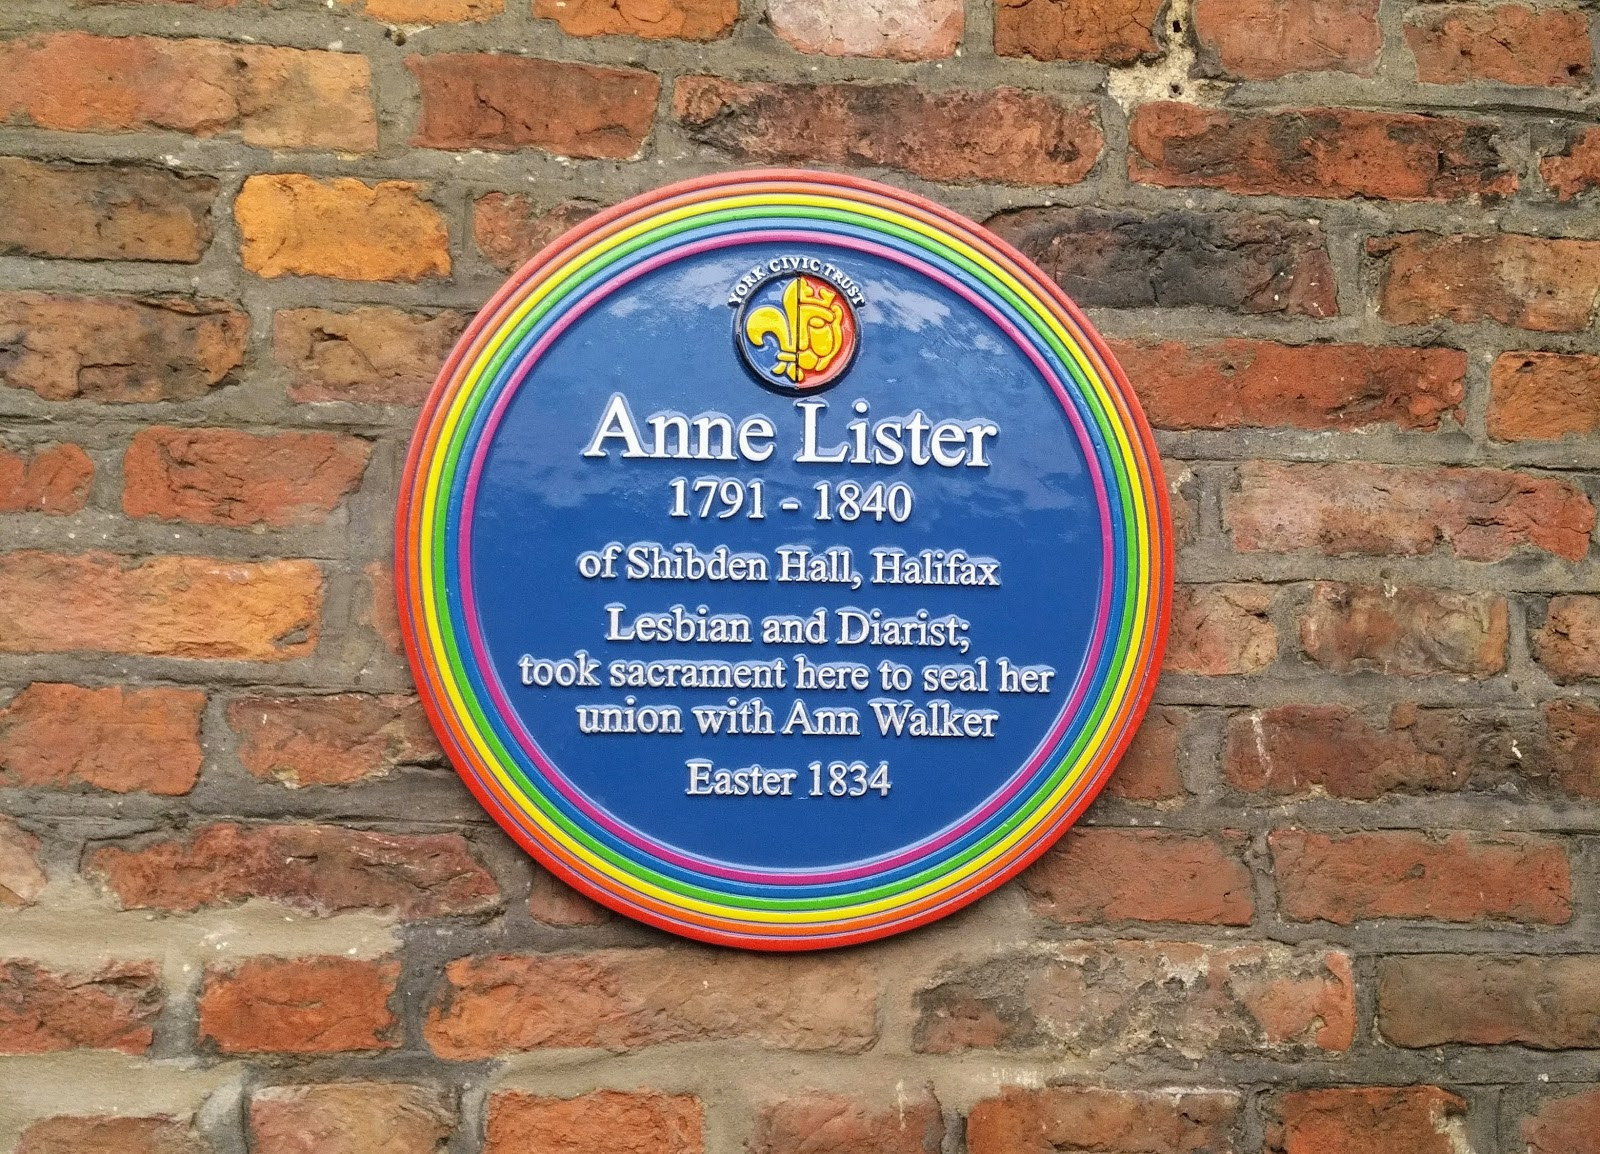 John's Labour blog: Anne Lister: Lesbian and Diarist